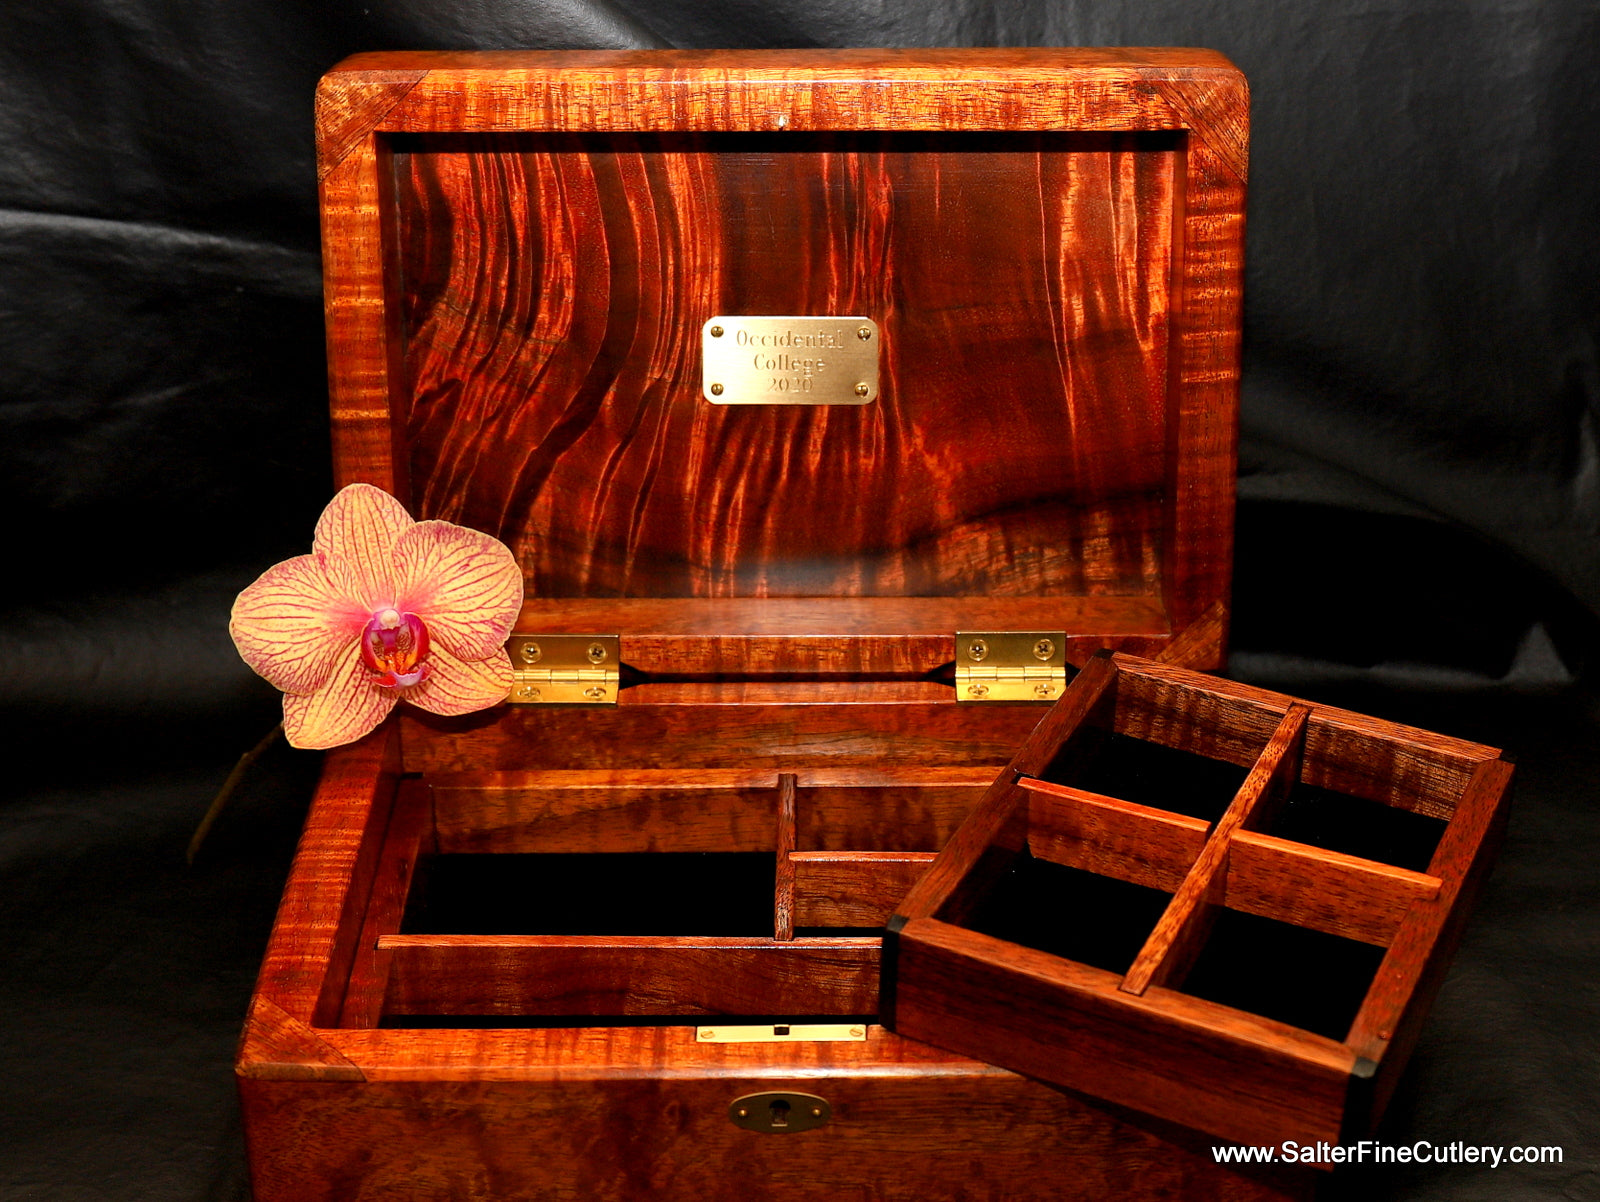 Ladies special request jewelry box with custom trays and engraved plate by Salter Fine Cutlery of Hawaii